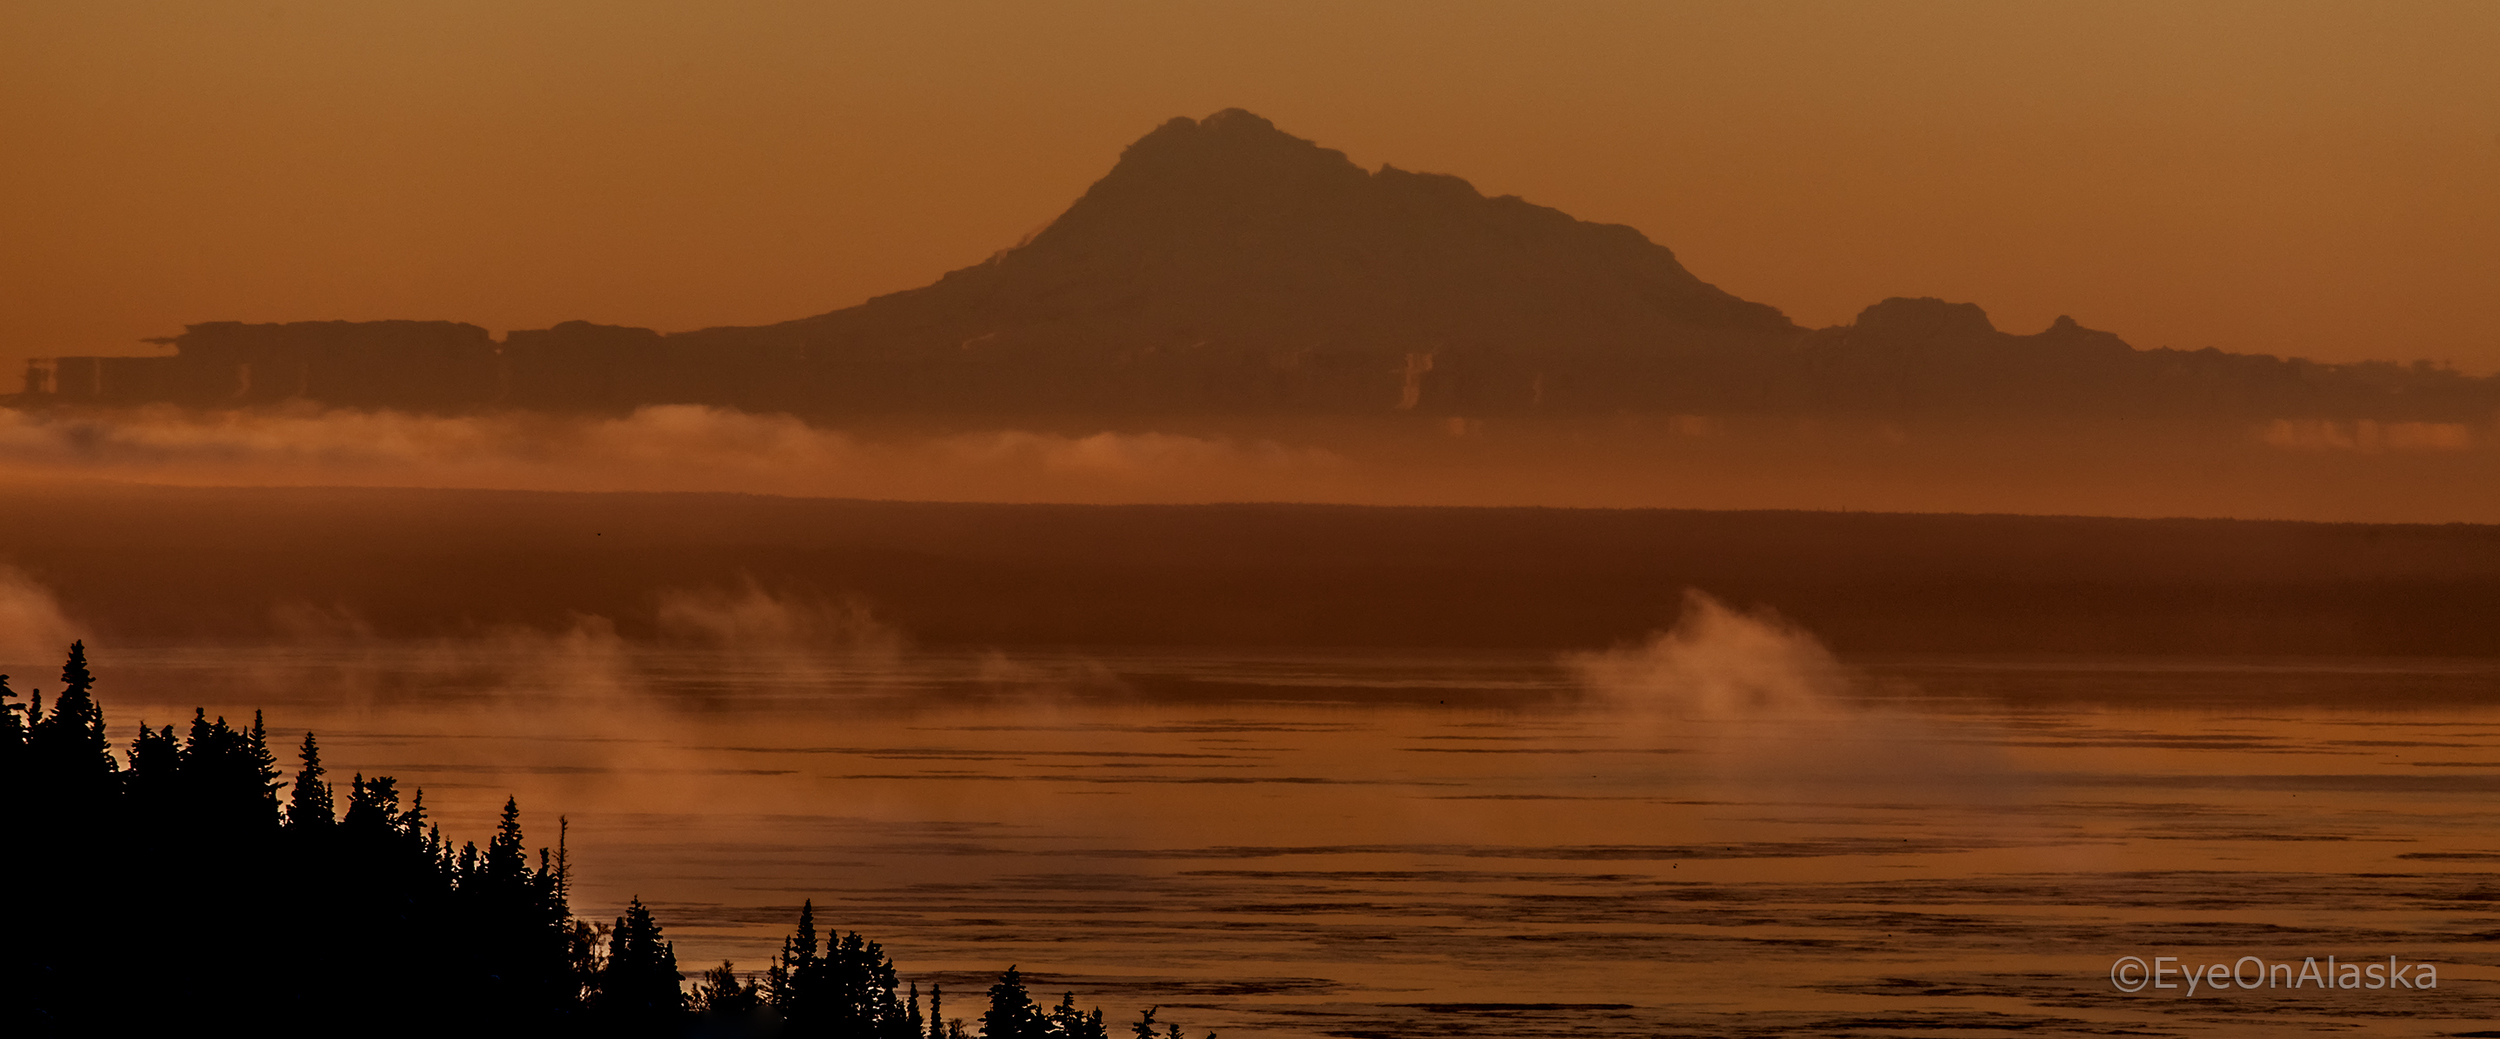 Mt. Redoubt volcano from Anchorage.